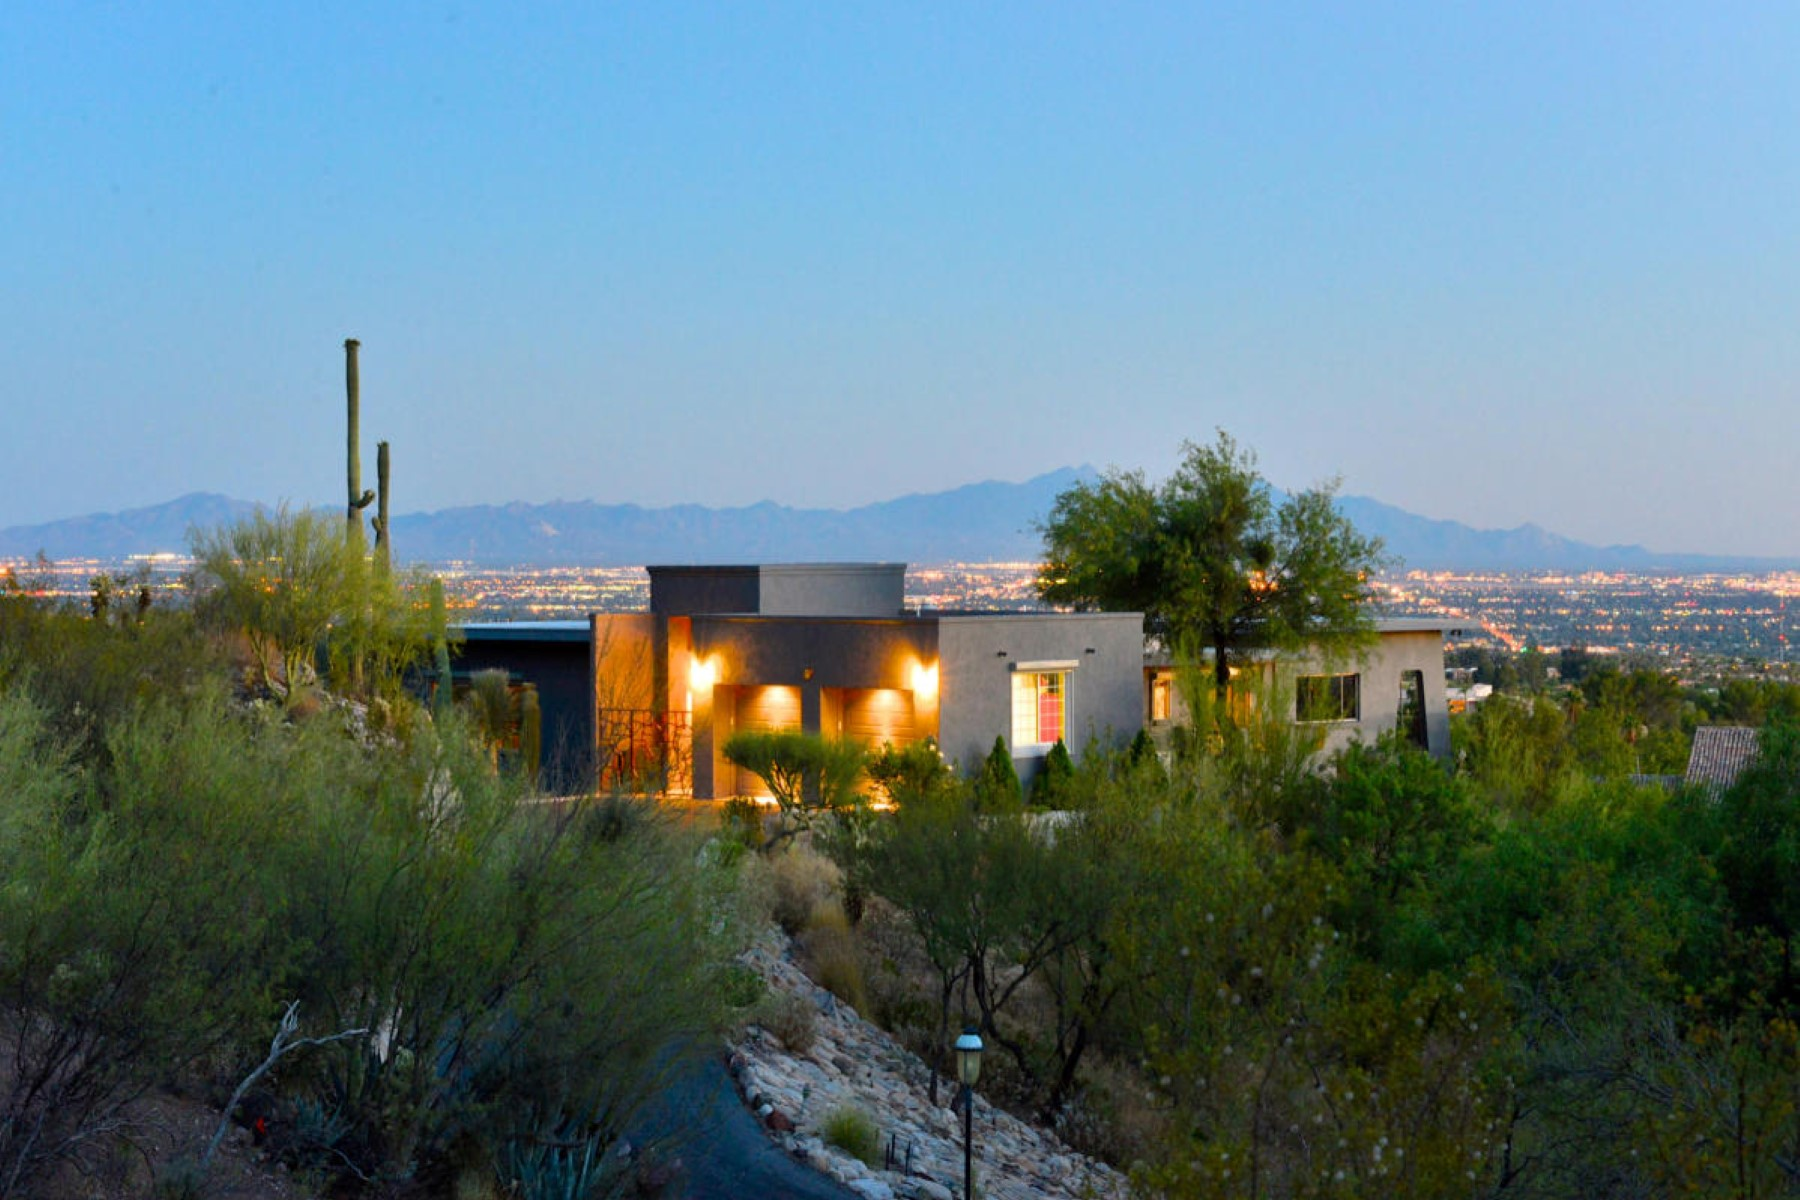 Maison unifamiliale pour l Vente à Extraordinary modern contemporary home with spectacular city views. 4940 E Winged Foot Drive Tucson, Arizona, 85718 États-Unis